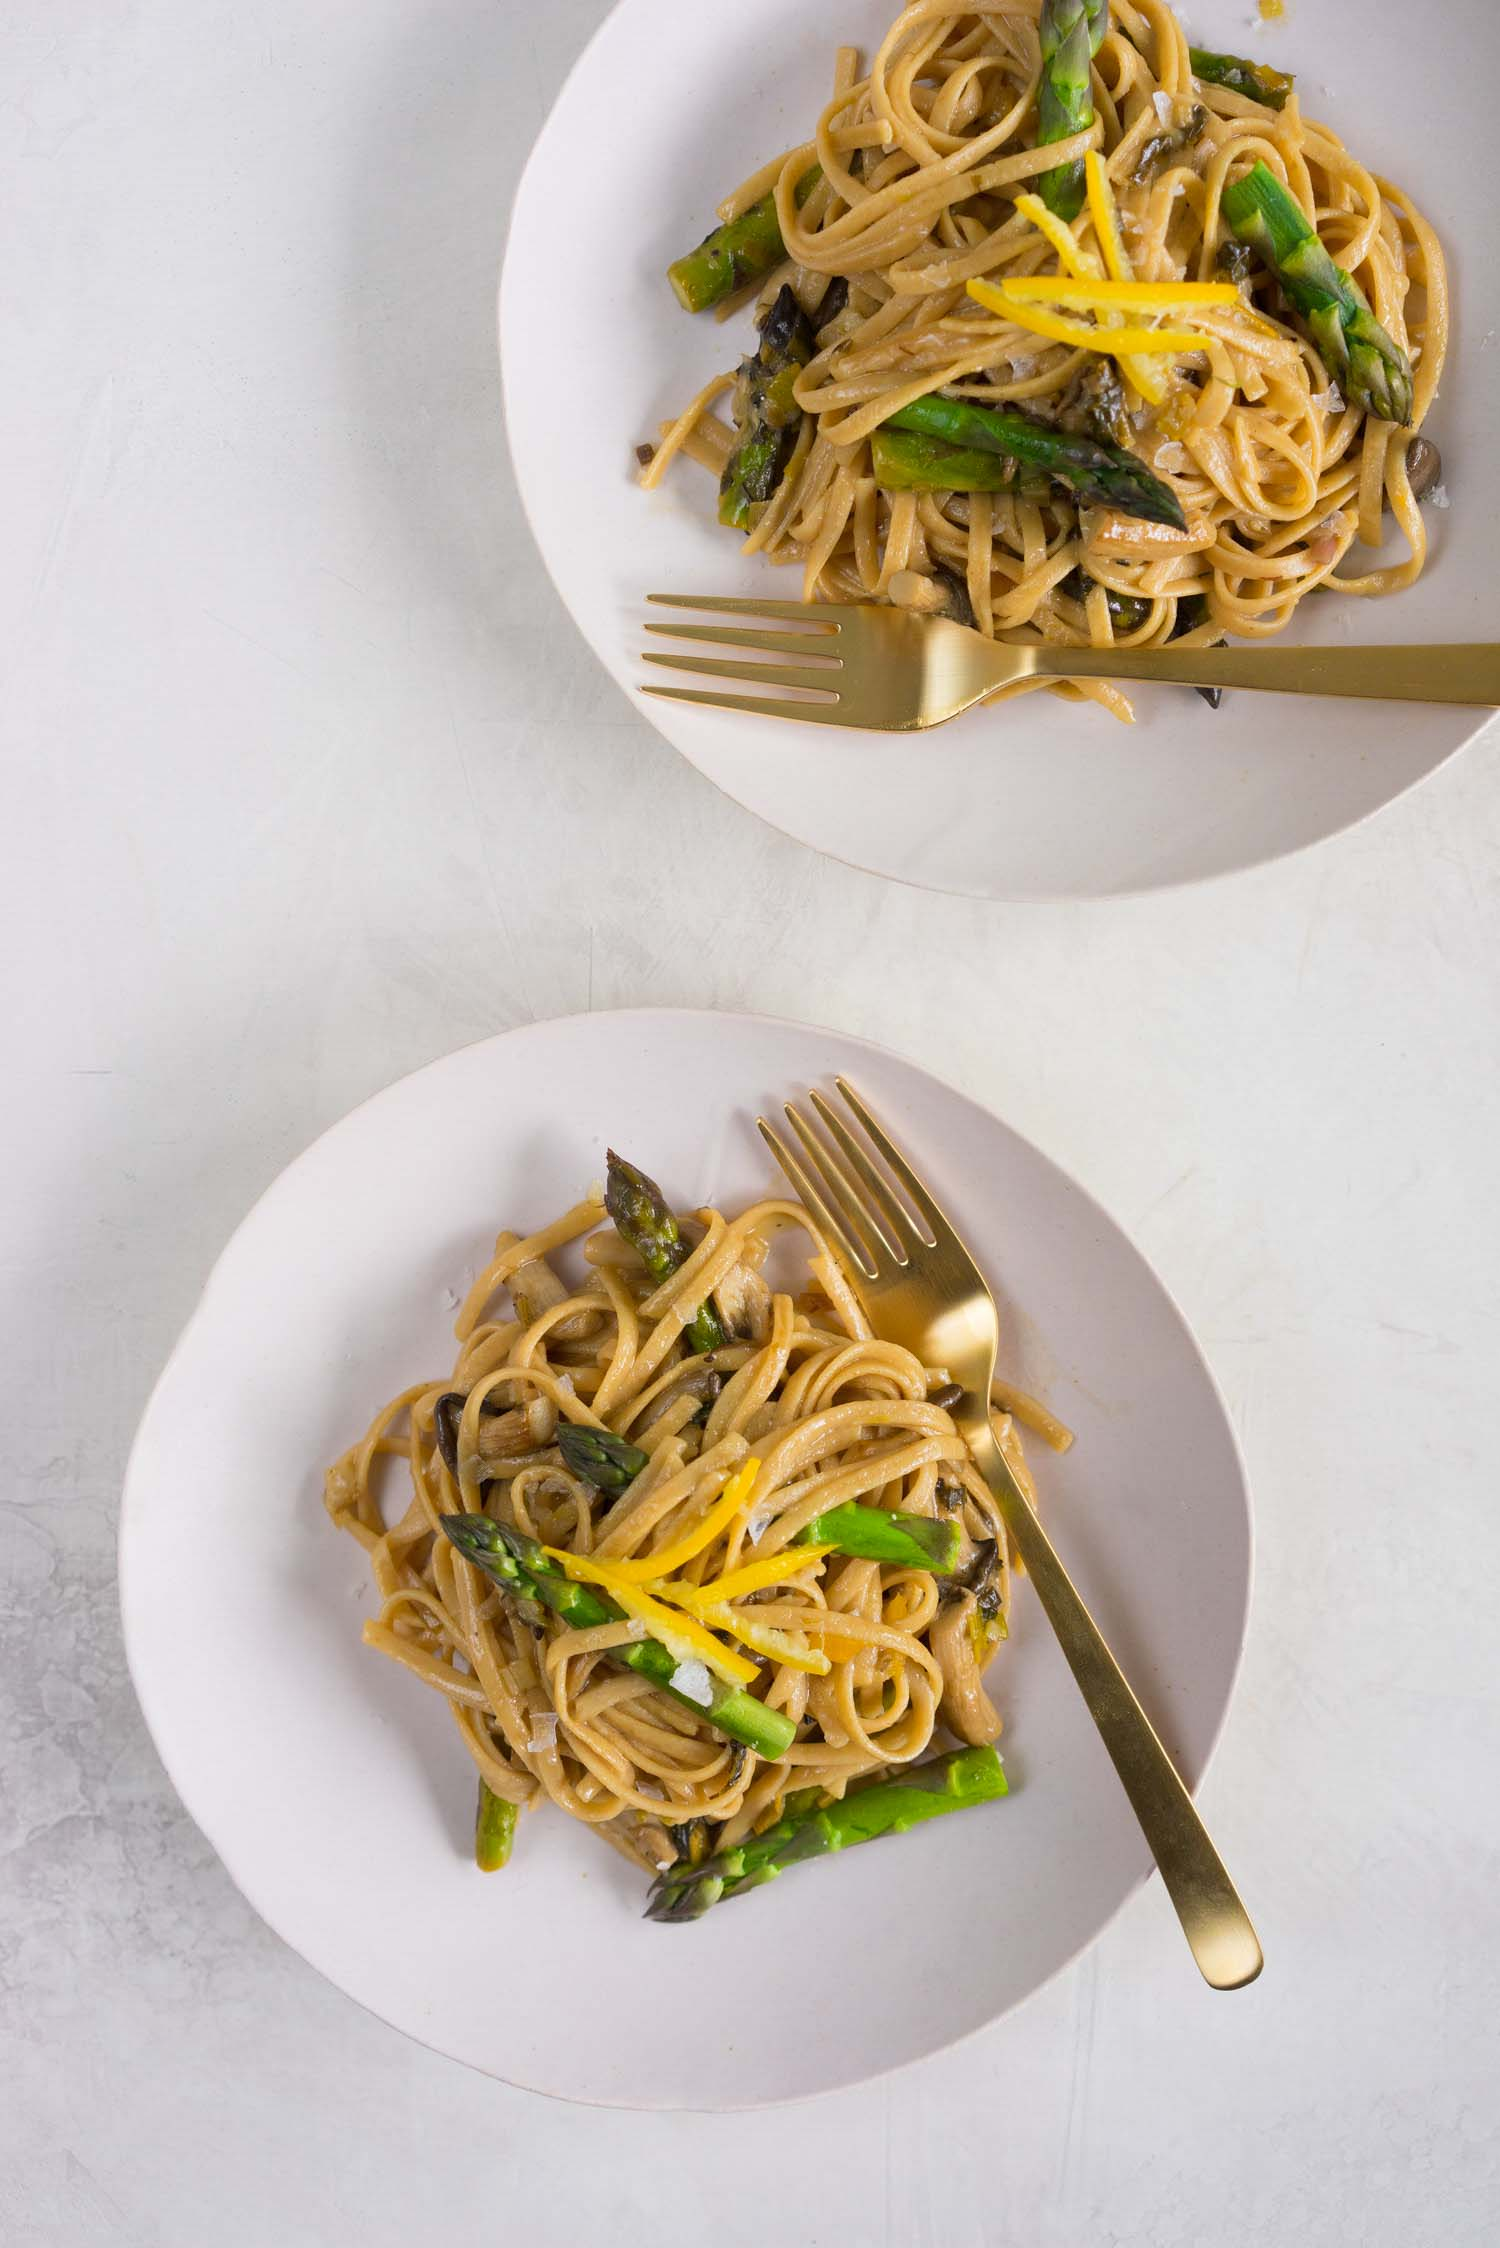 Ramps recipes for pasta with mushroom and preserved lemon